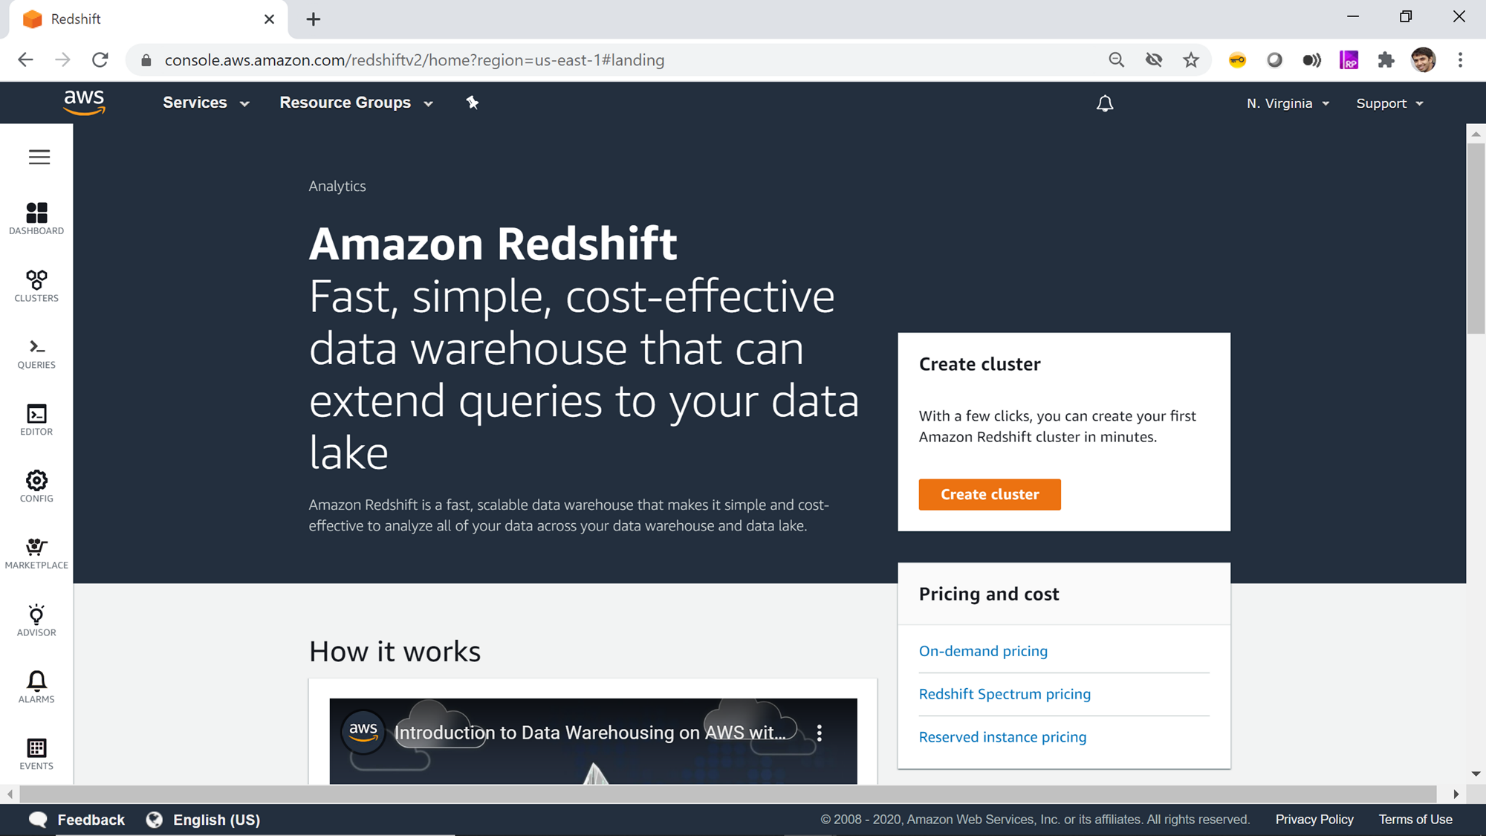 Redshift Home Page